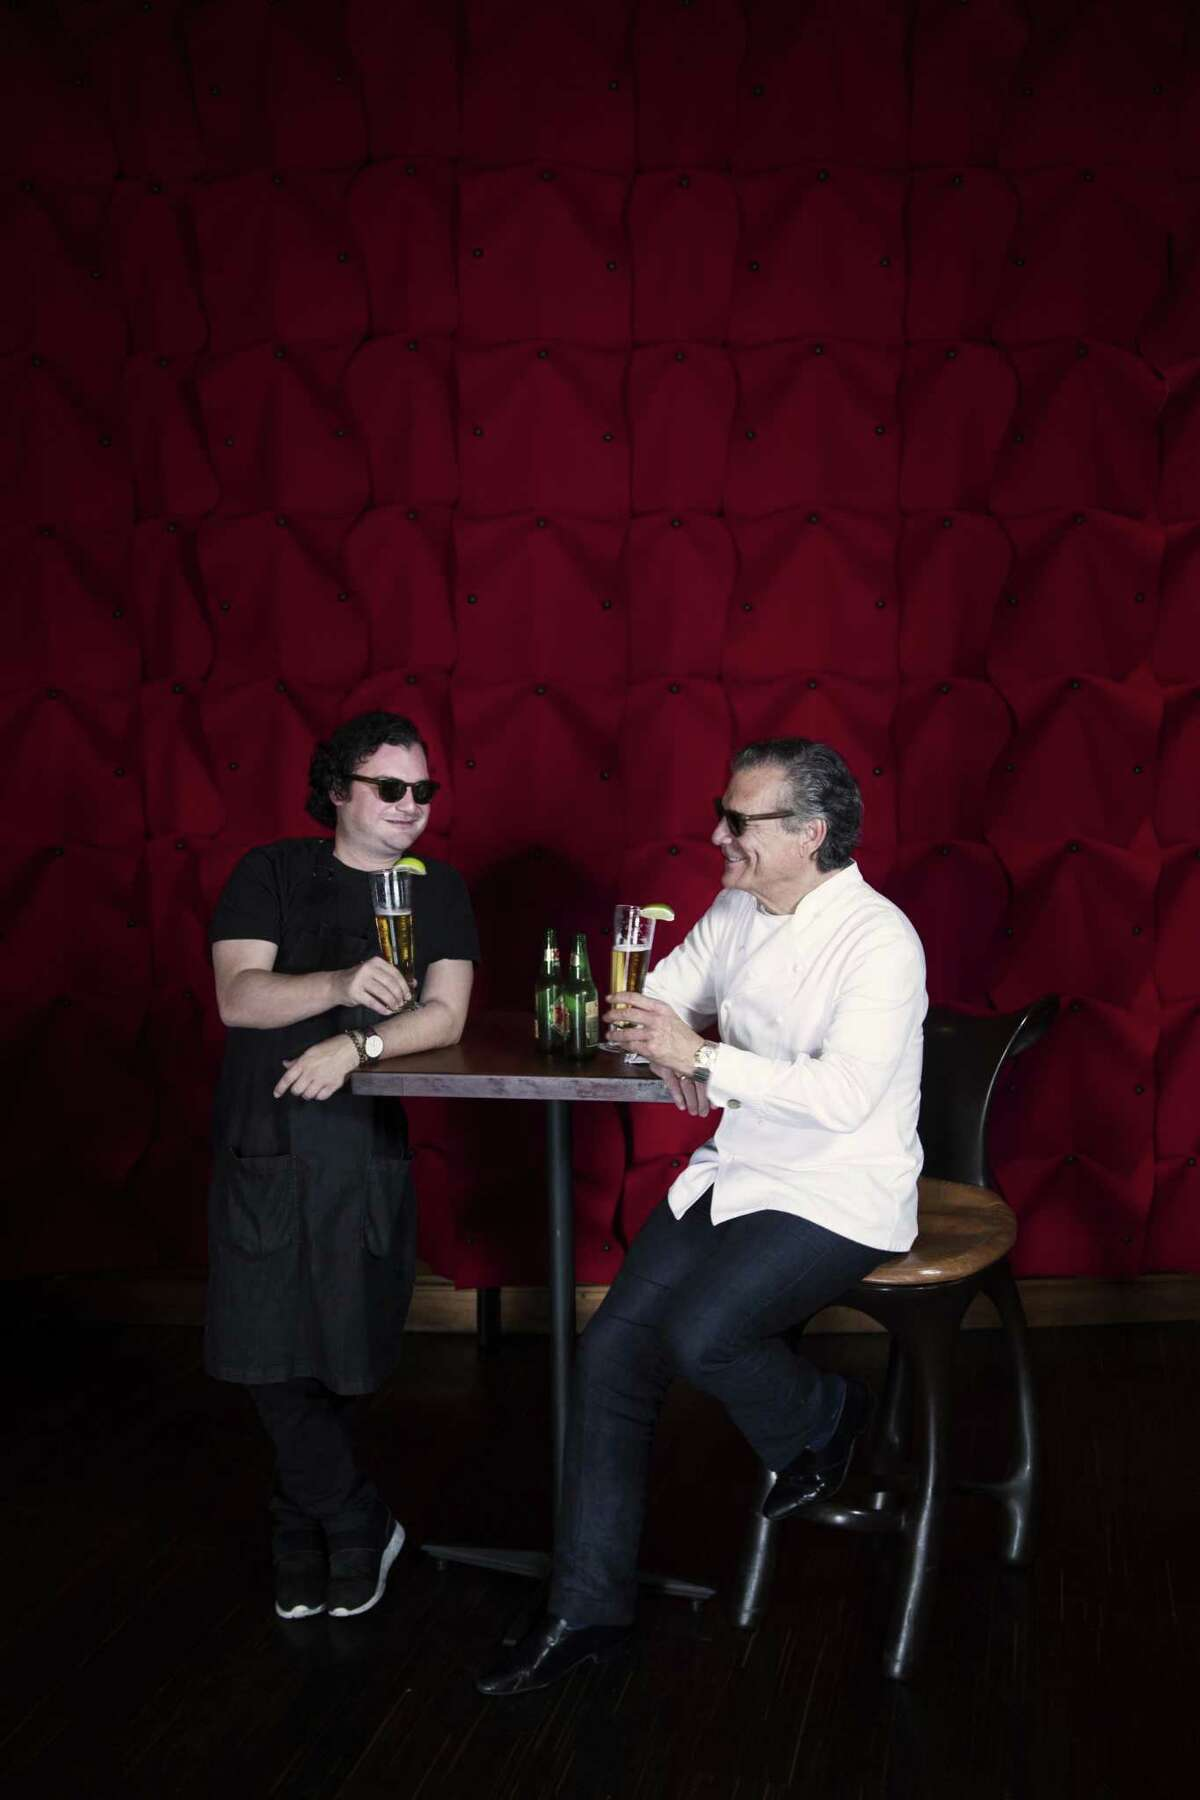 David Cordúa and his father Michael Cordúa share a beer at their restaurant Américas.